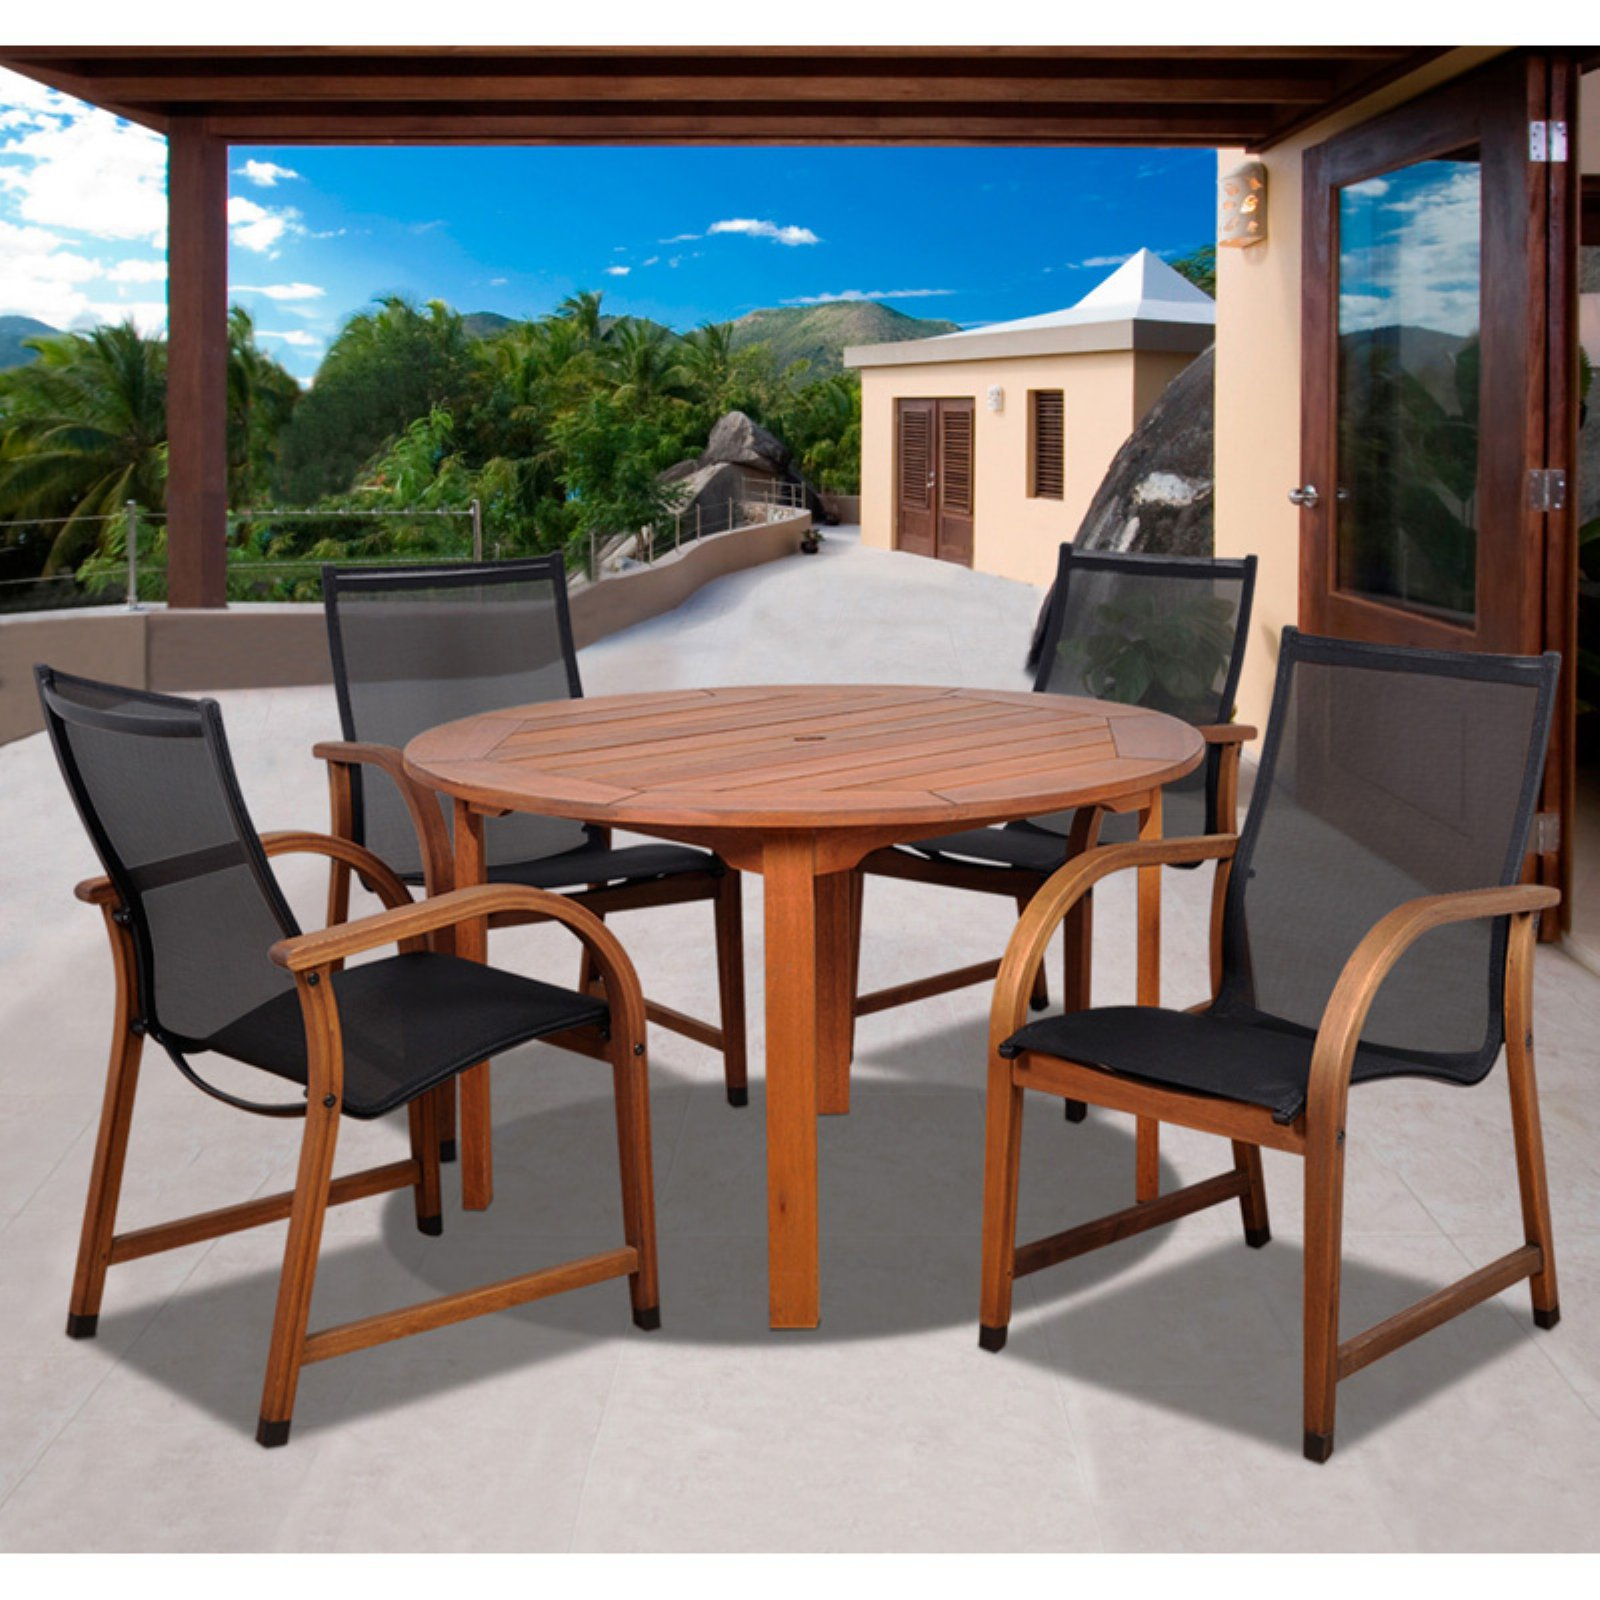 Bahamas 5-Piece Eucalyptus/Black Sling Round Patio Dining Set